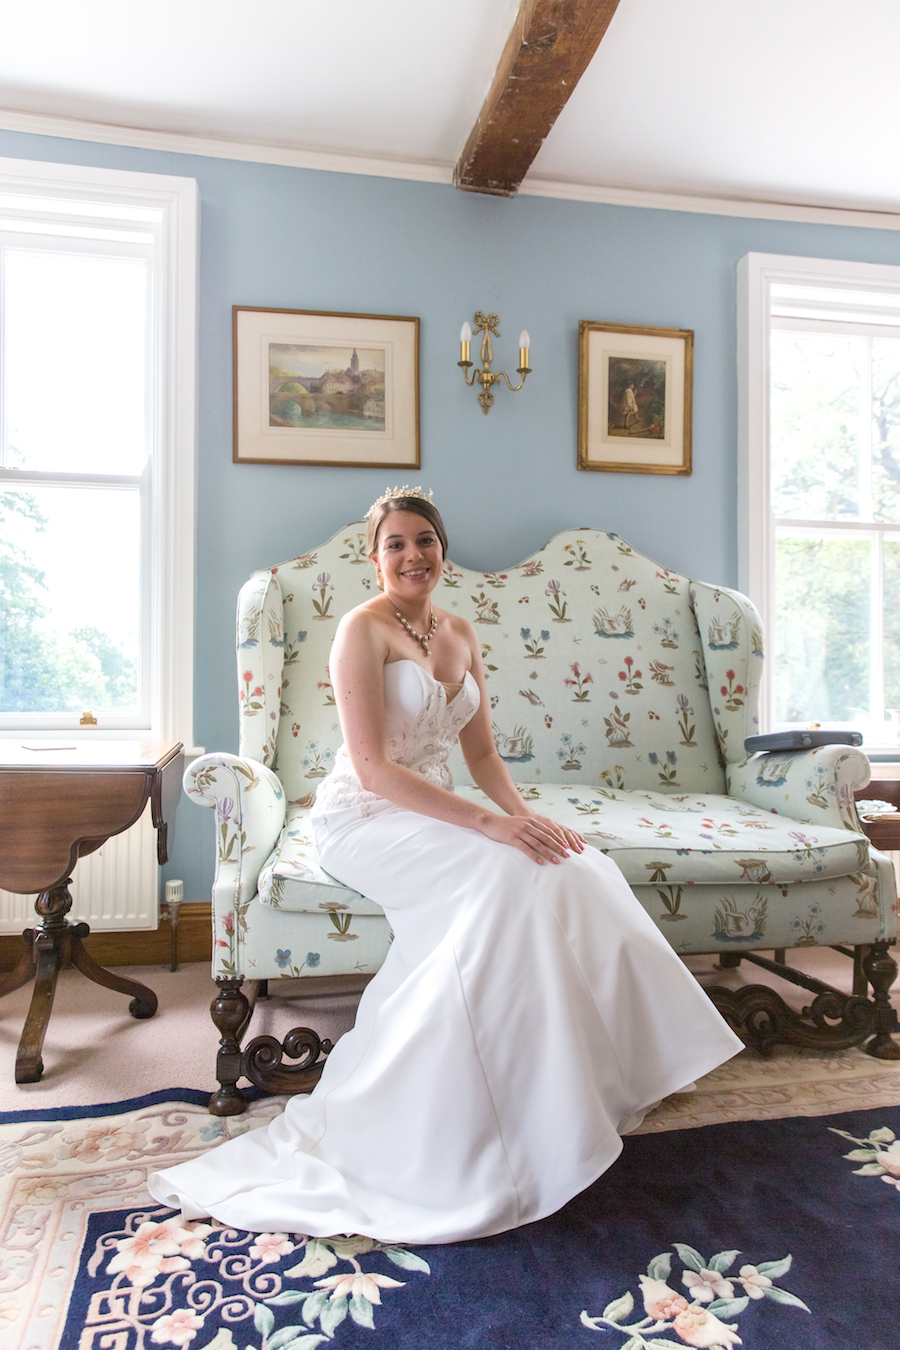 Real wedding by Ayshea Goldberg Photography at Layer Marney Tower (6)